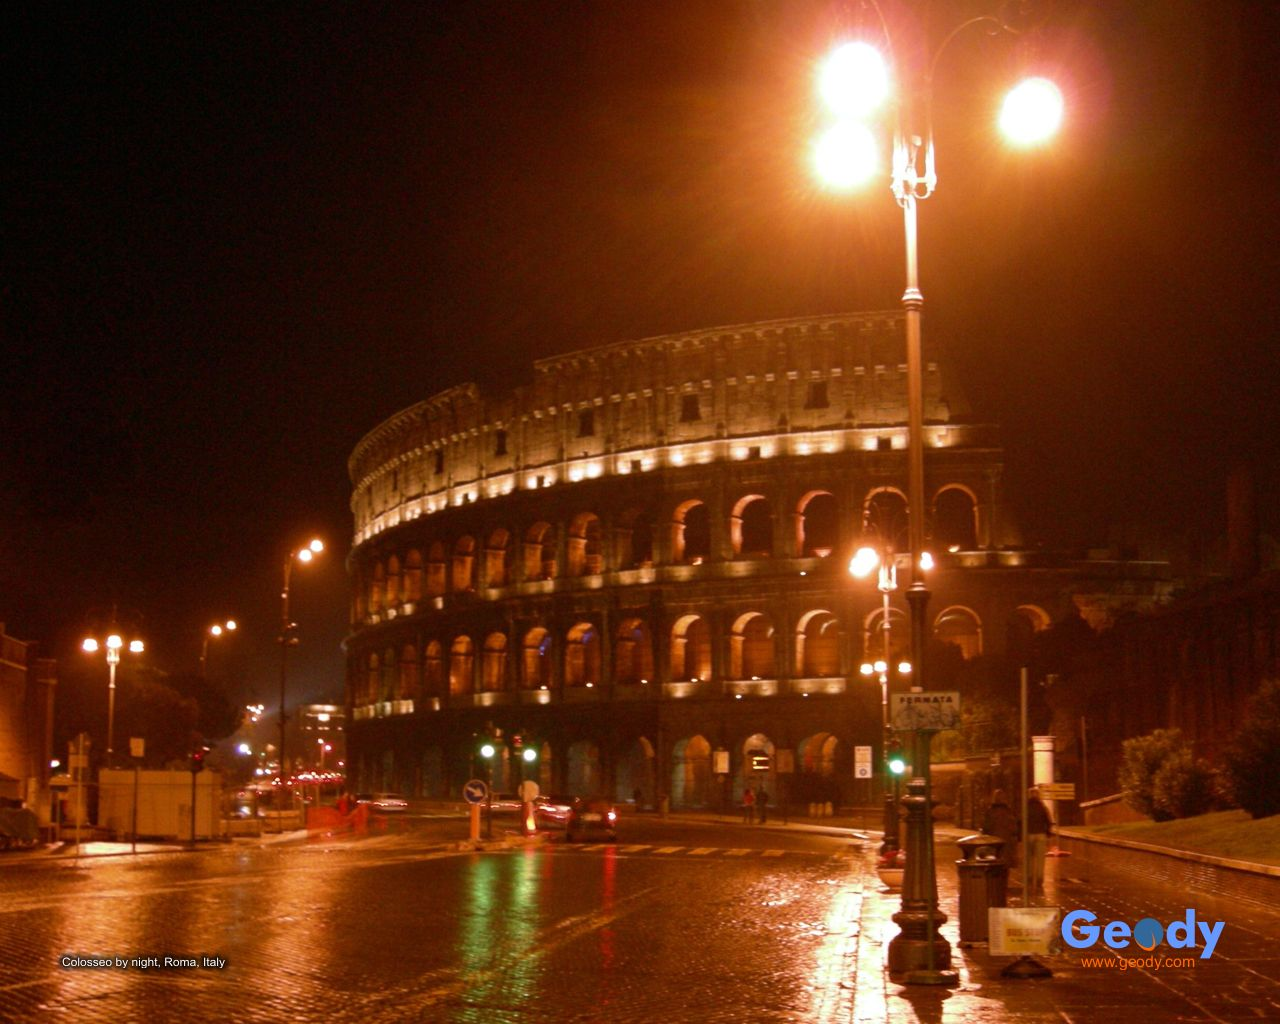 Best Wallpaper Night Colosseum - geody_wallpaper_it_roma_colosseo_night_1280x1024  Perfect Image Reference.jpg